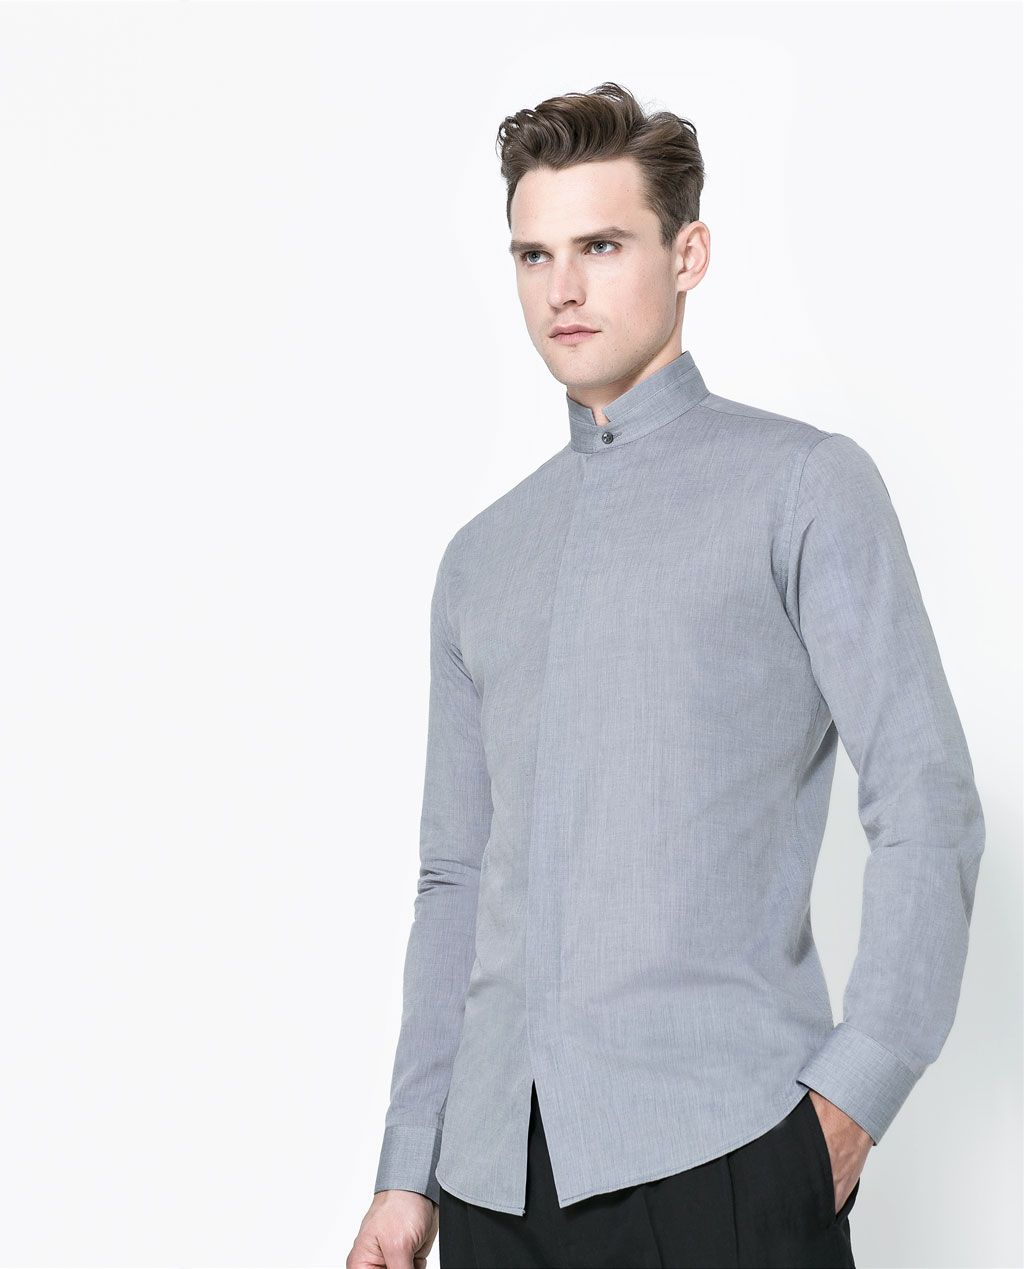 MAO COLLAR SHIRT from Zara